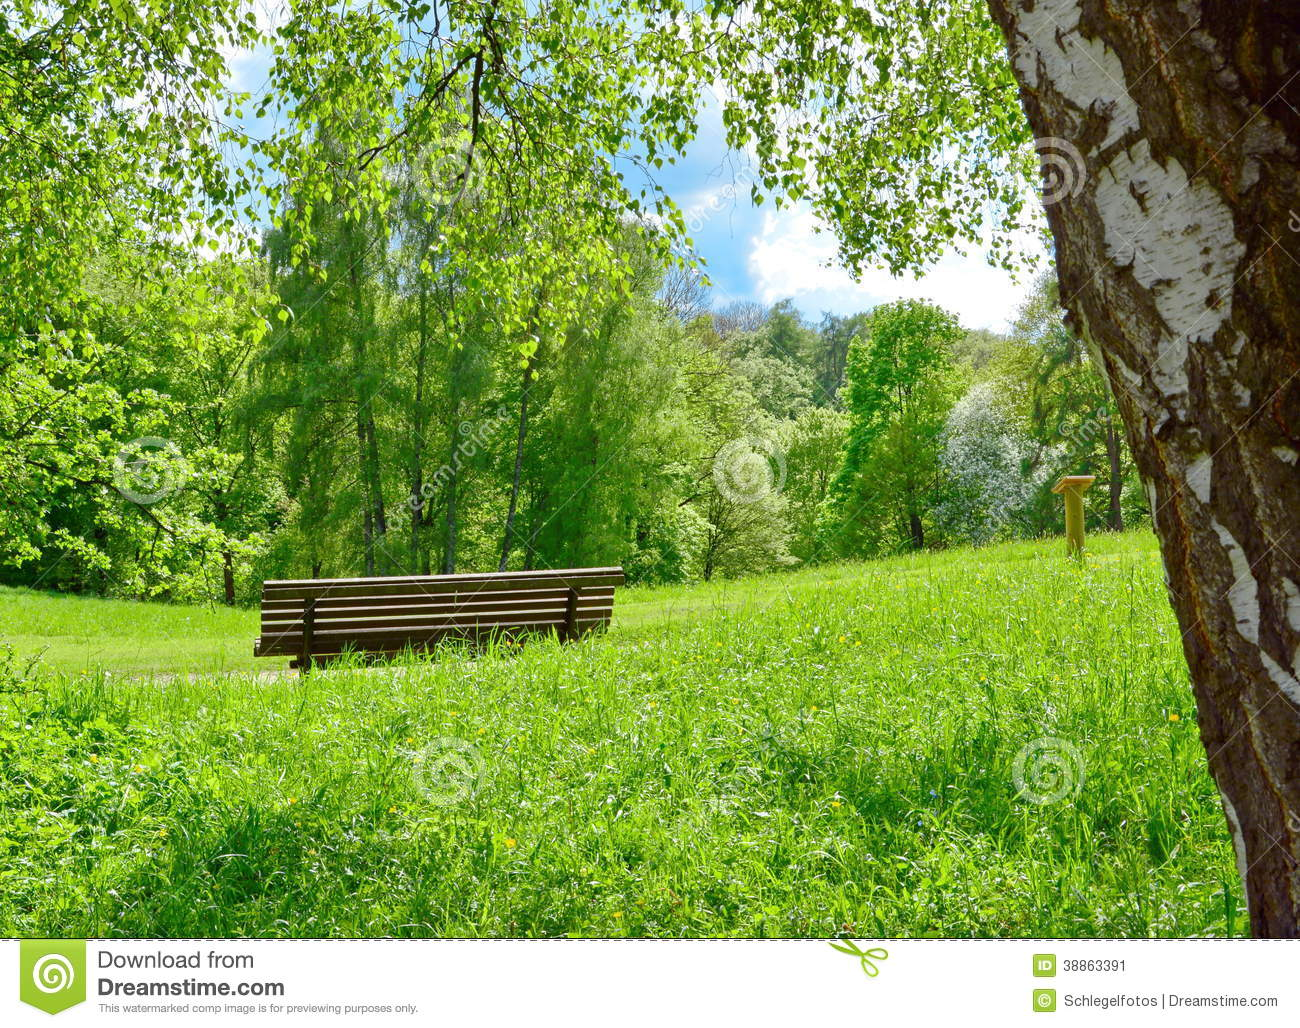 Park Bench In Nature Stock Photo - Image: 38863391